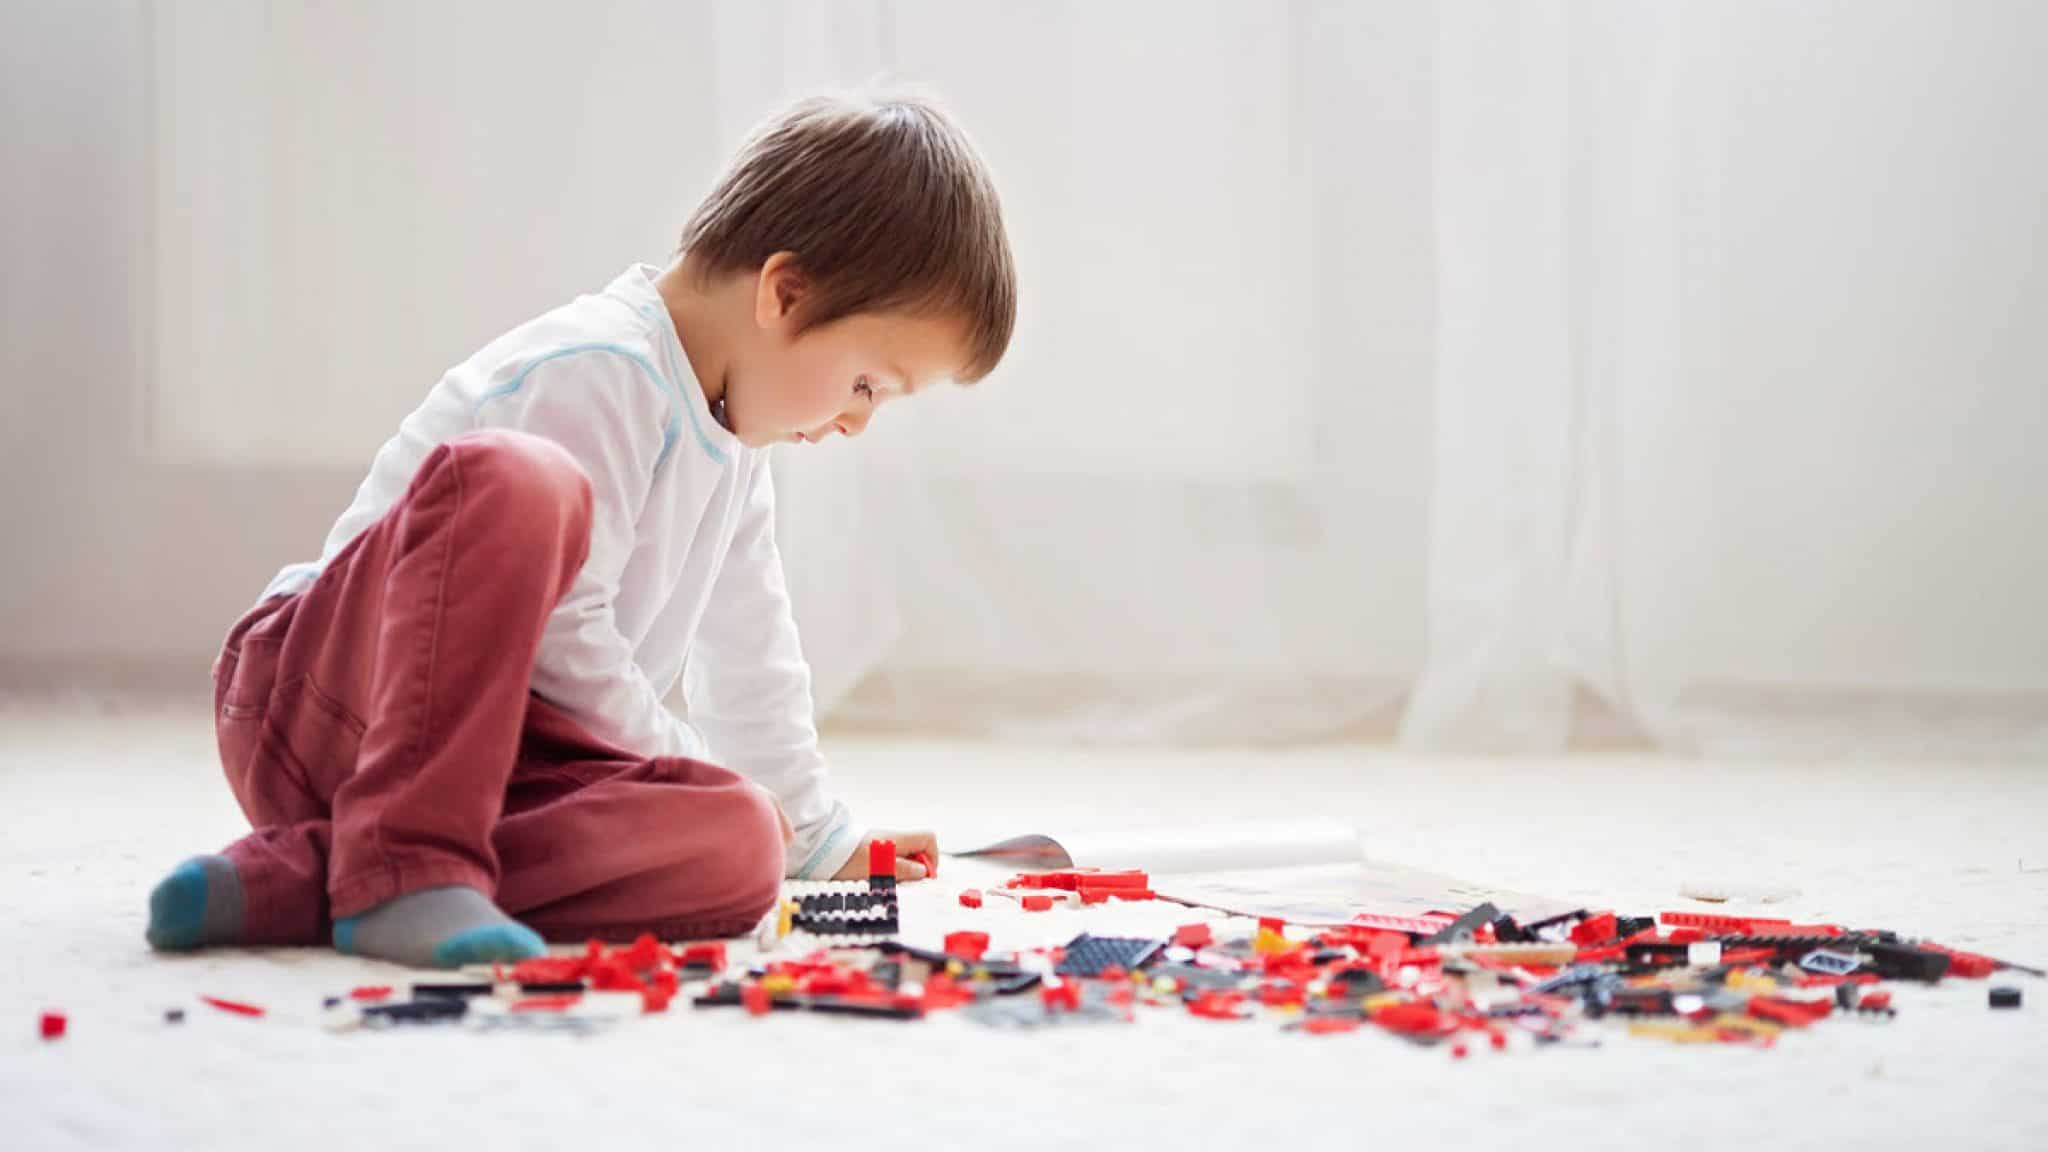 Best LEGO Sets for 6 year old